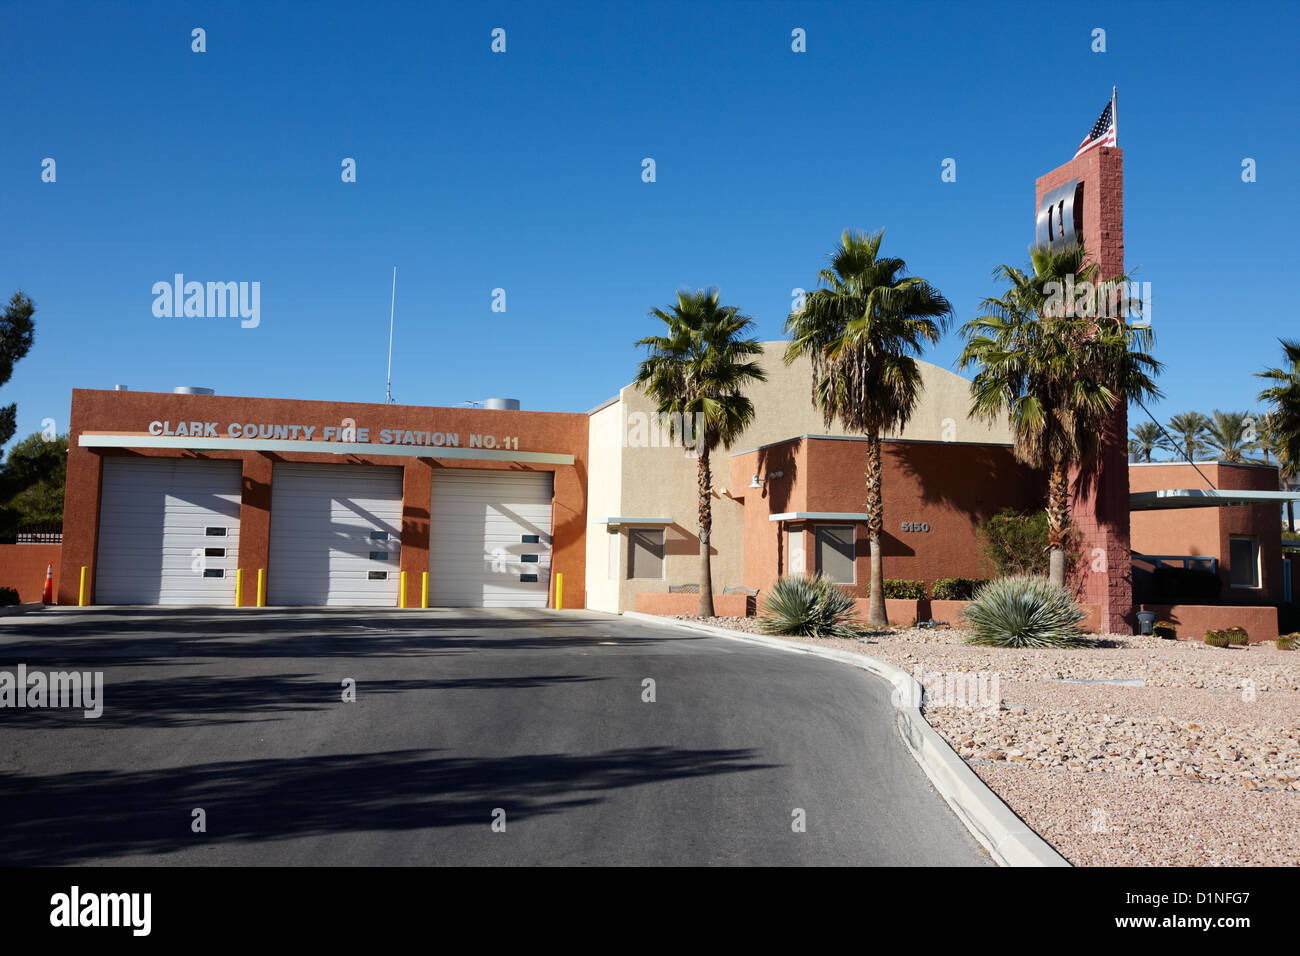 clark county fire department ccfd fire station no. 11 Las Vegas Nevada USA - Stock Image